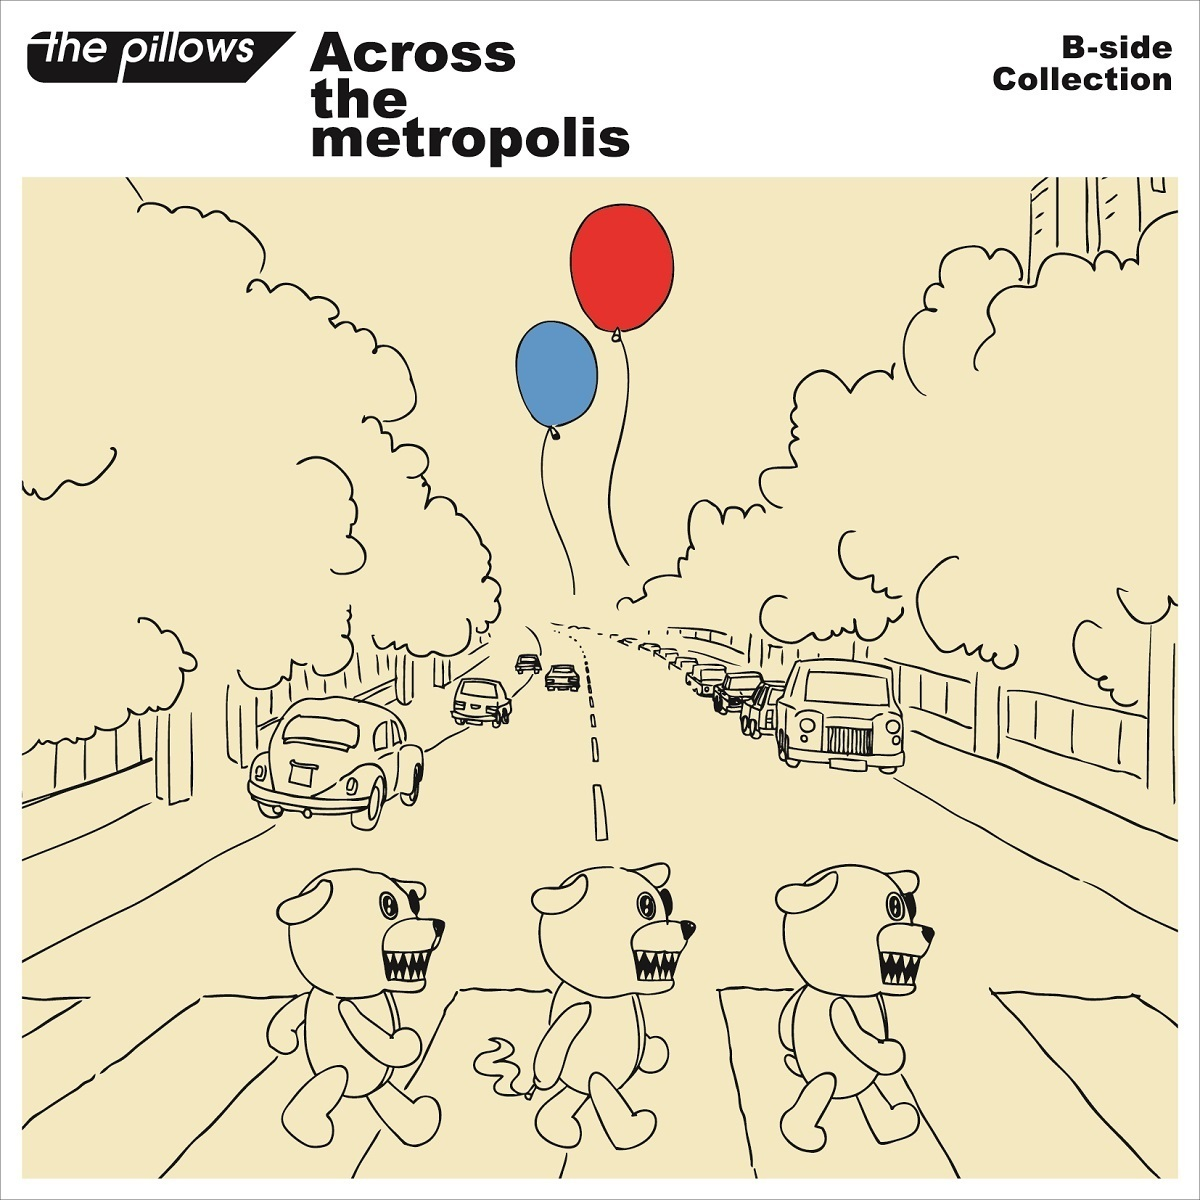 the pillows『Across the metropolis』